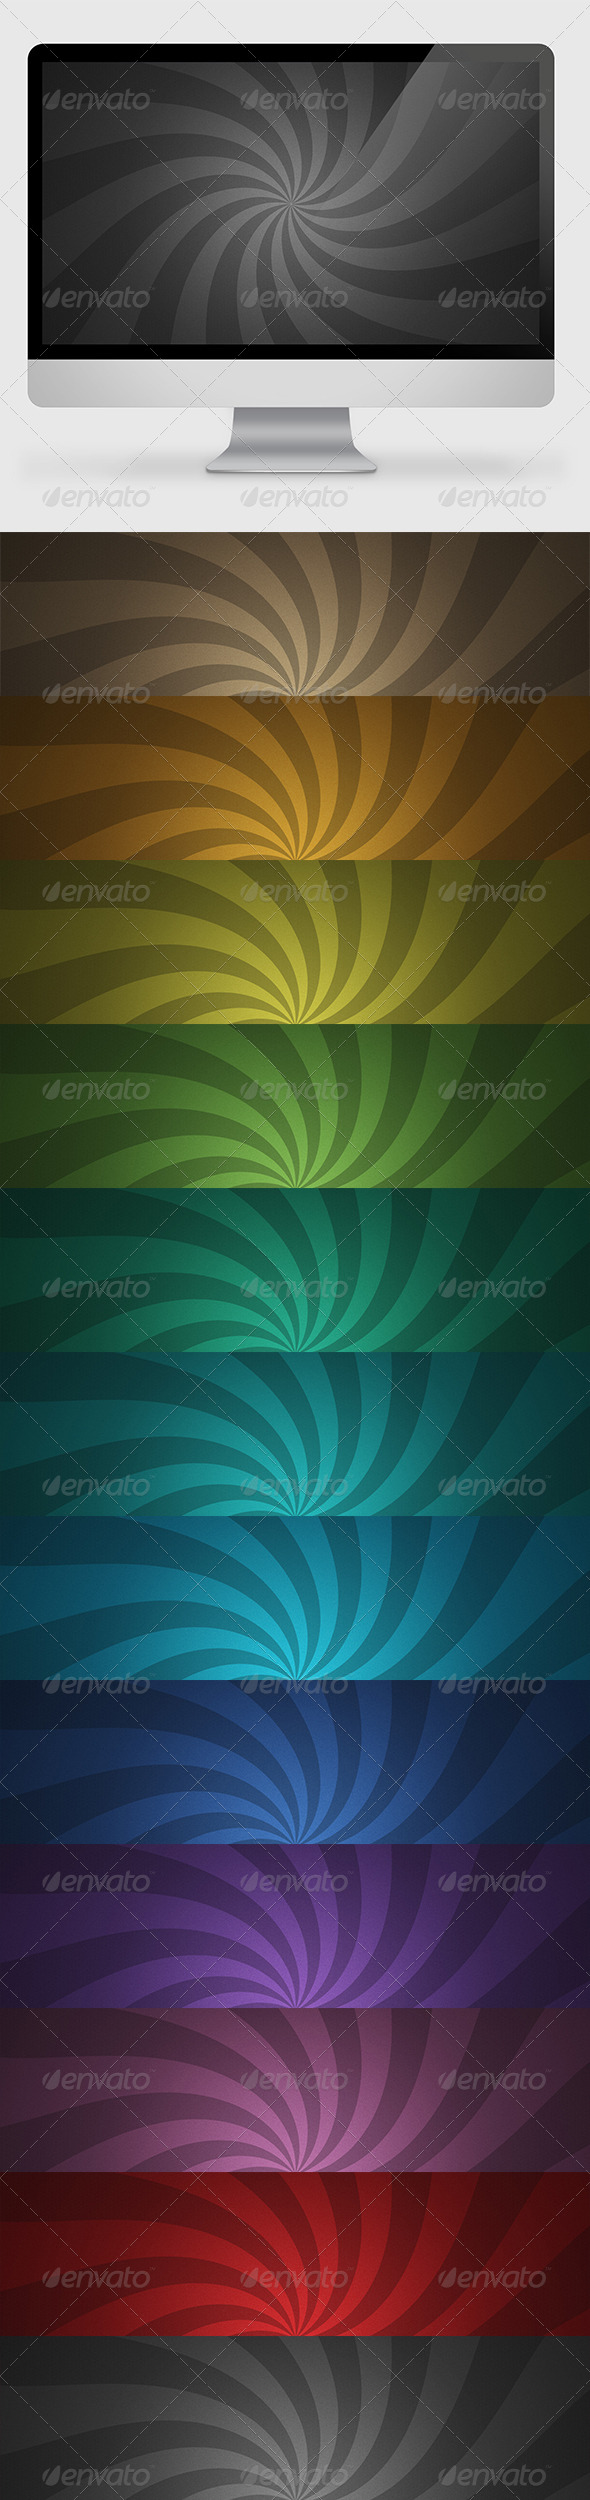 GraphicRiver Rays Backgrounds Wallpapers 7080385